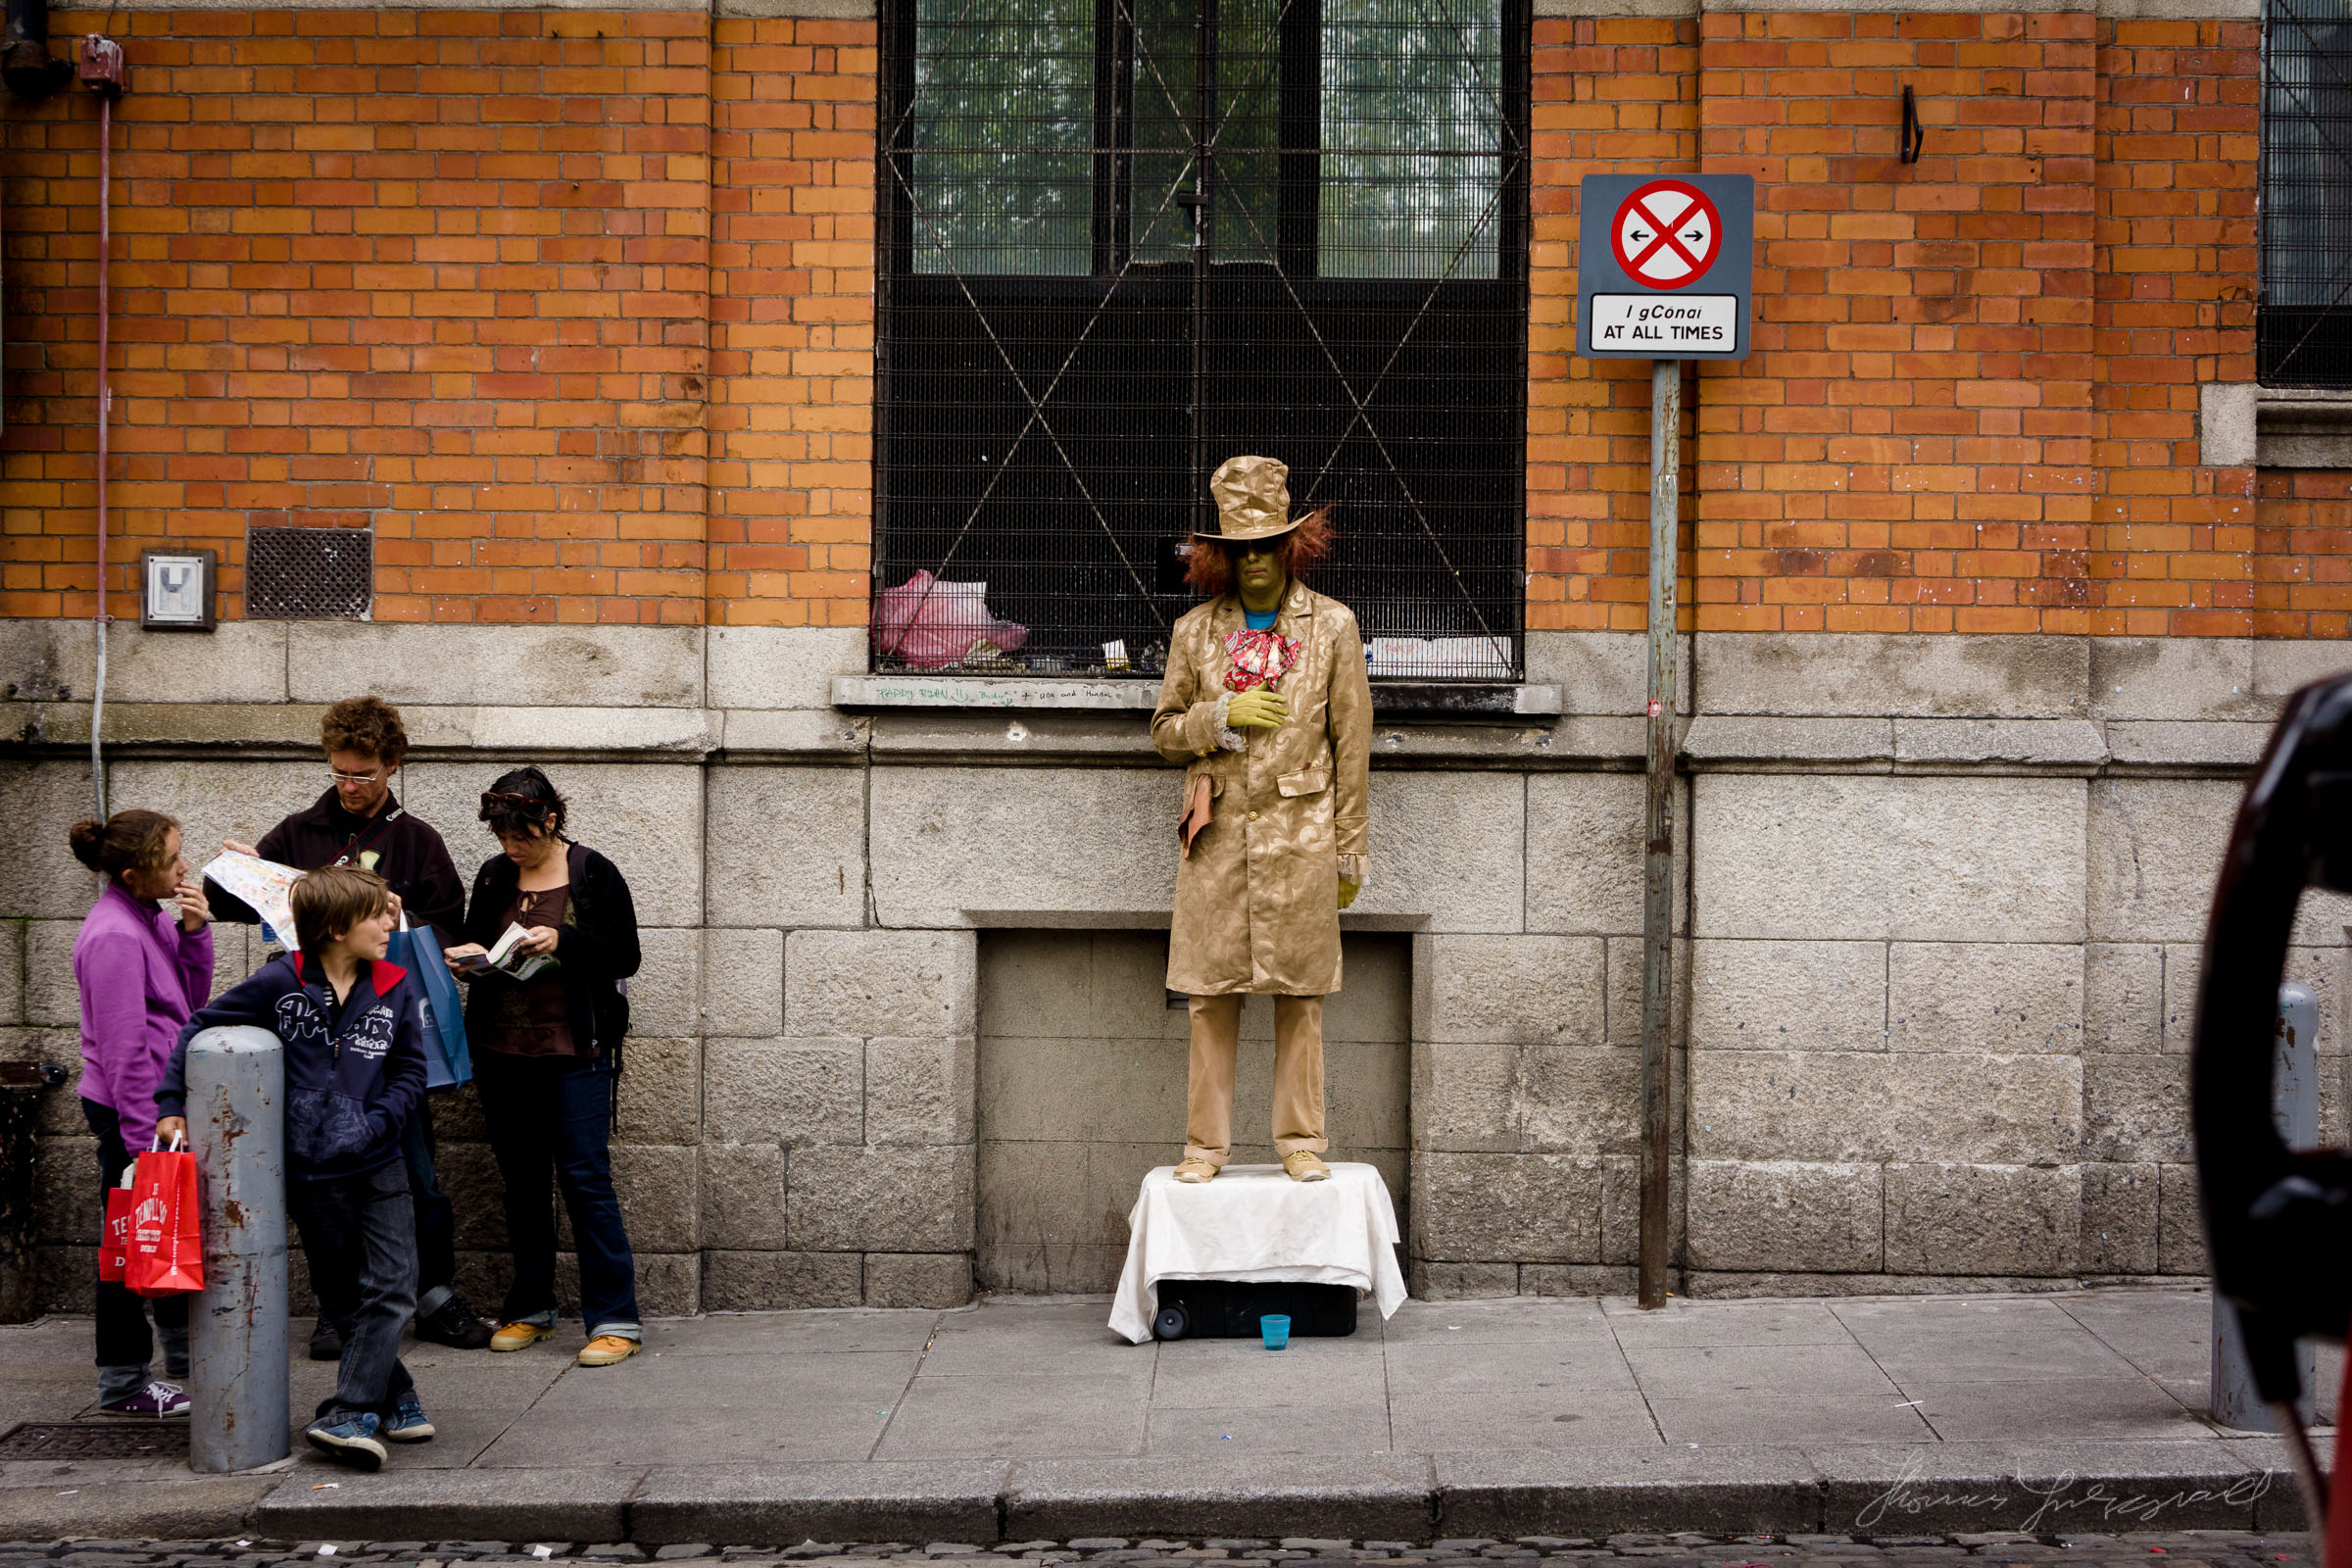 Street Performer in Temple Bar